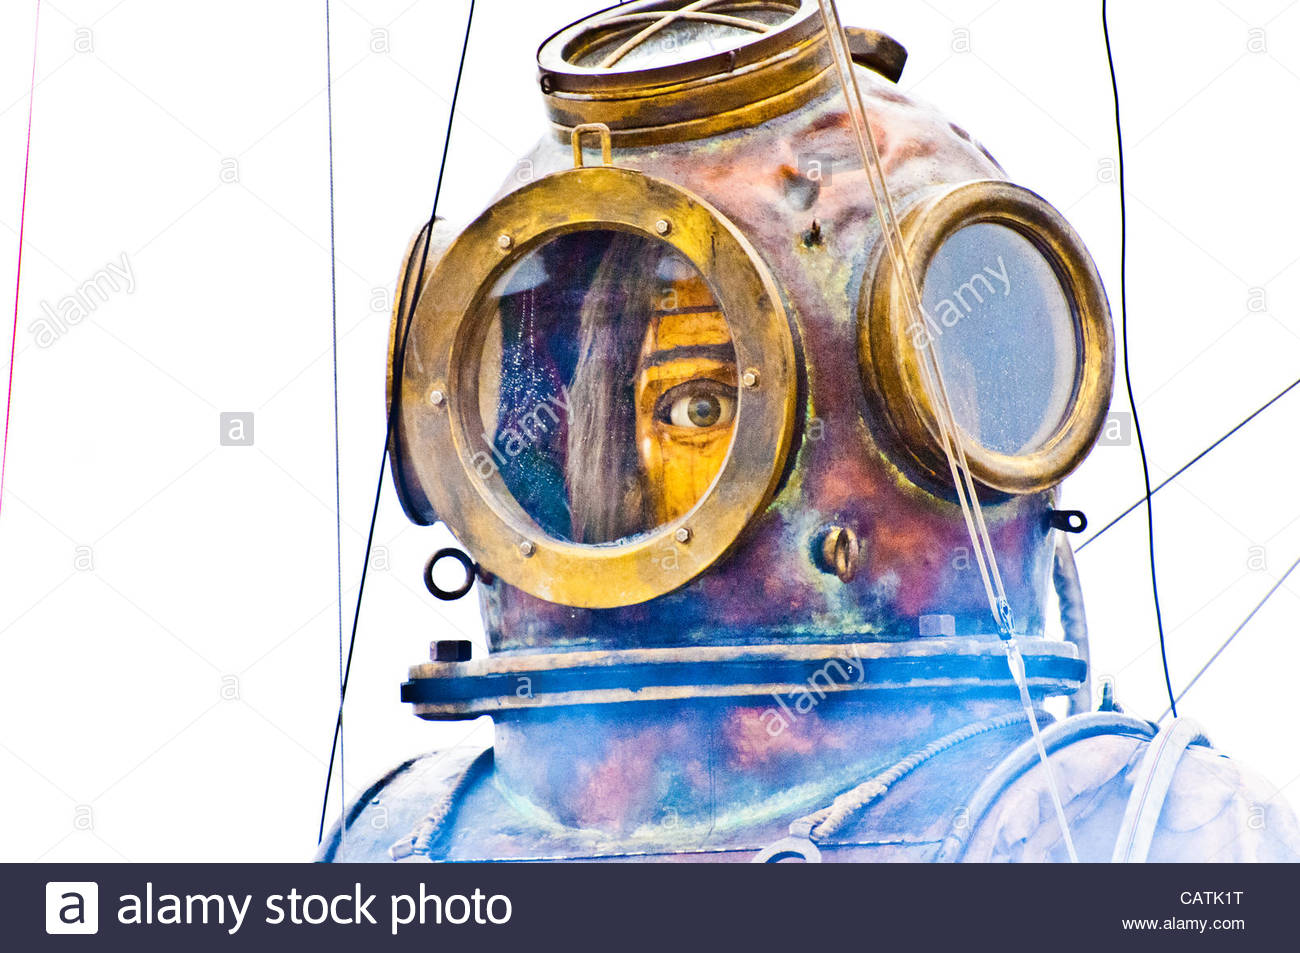 Giant Uncle waking up in Liverpool's Stanley Park, looking through his Diving Bell he scan see with one eye, - Stock Image